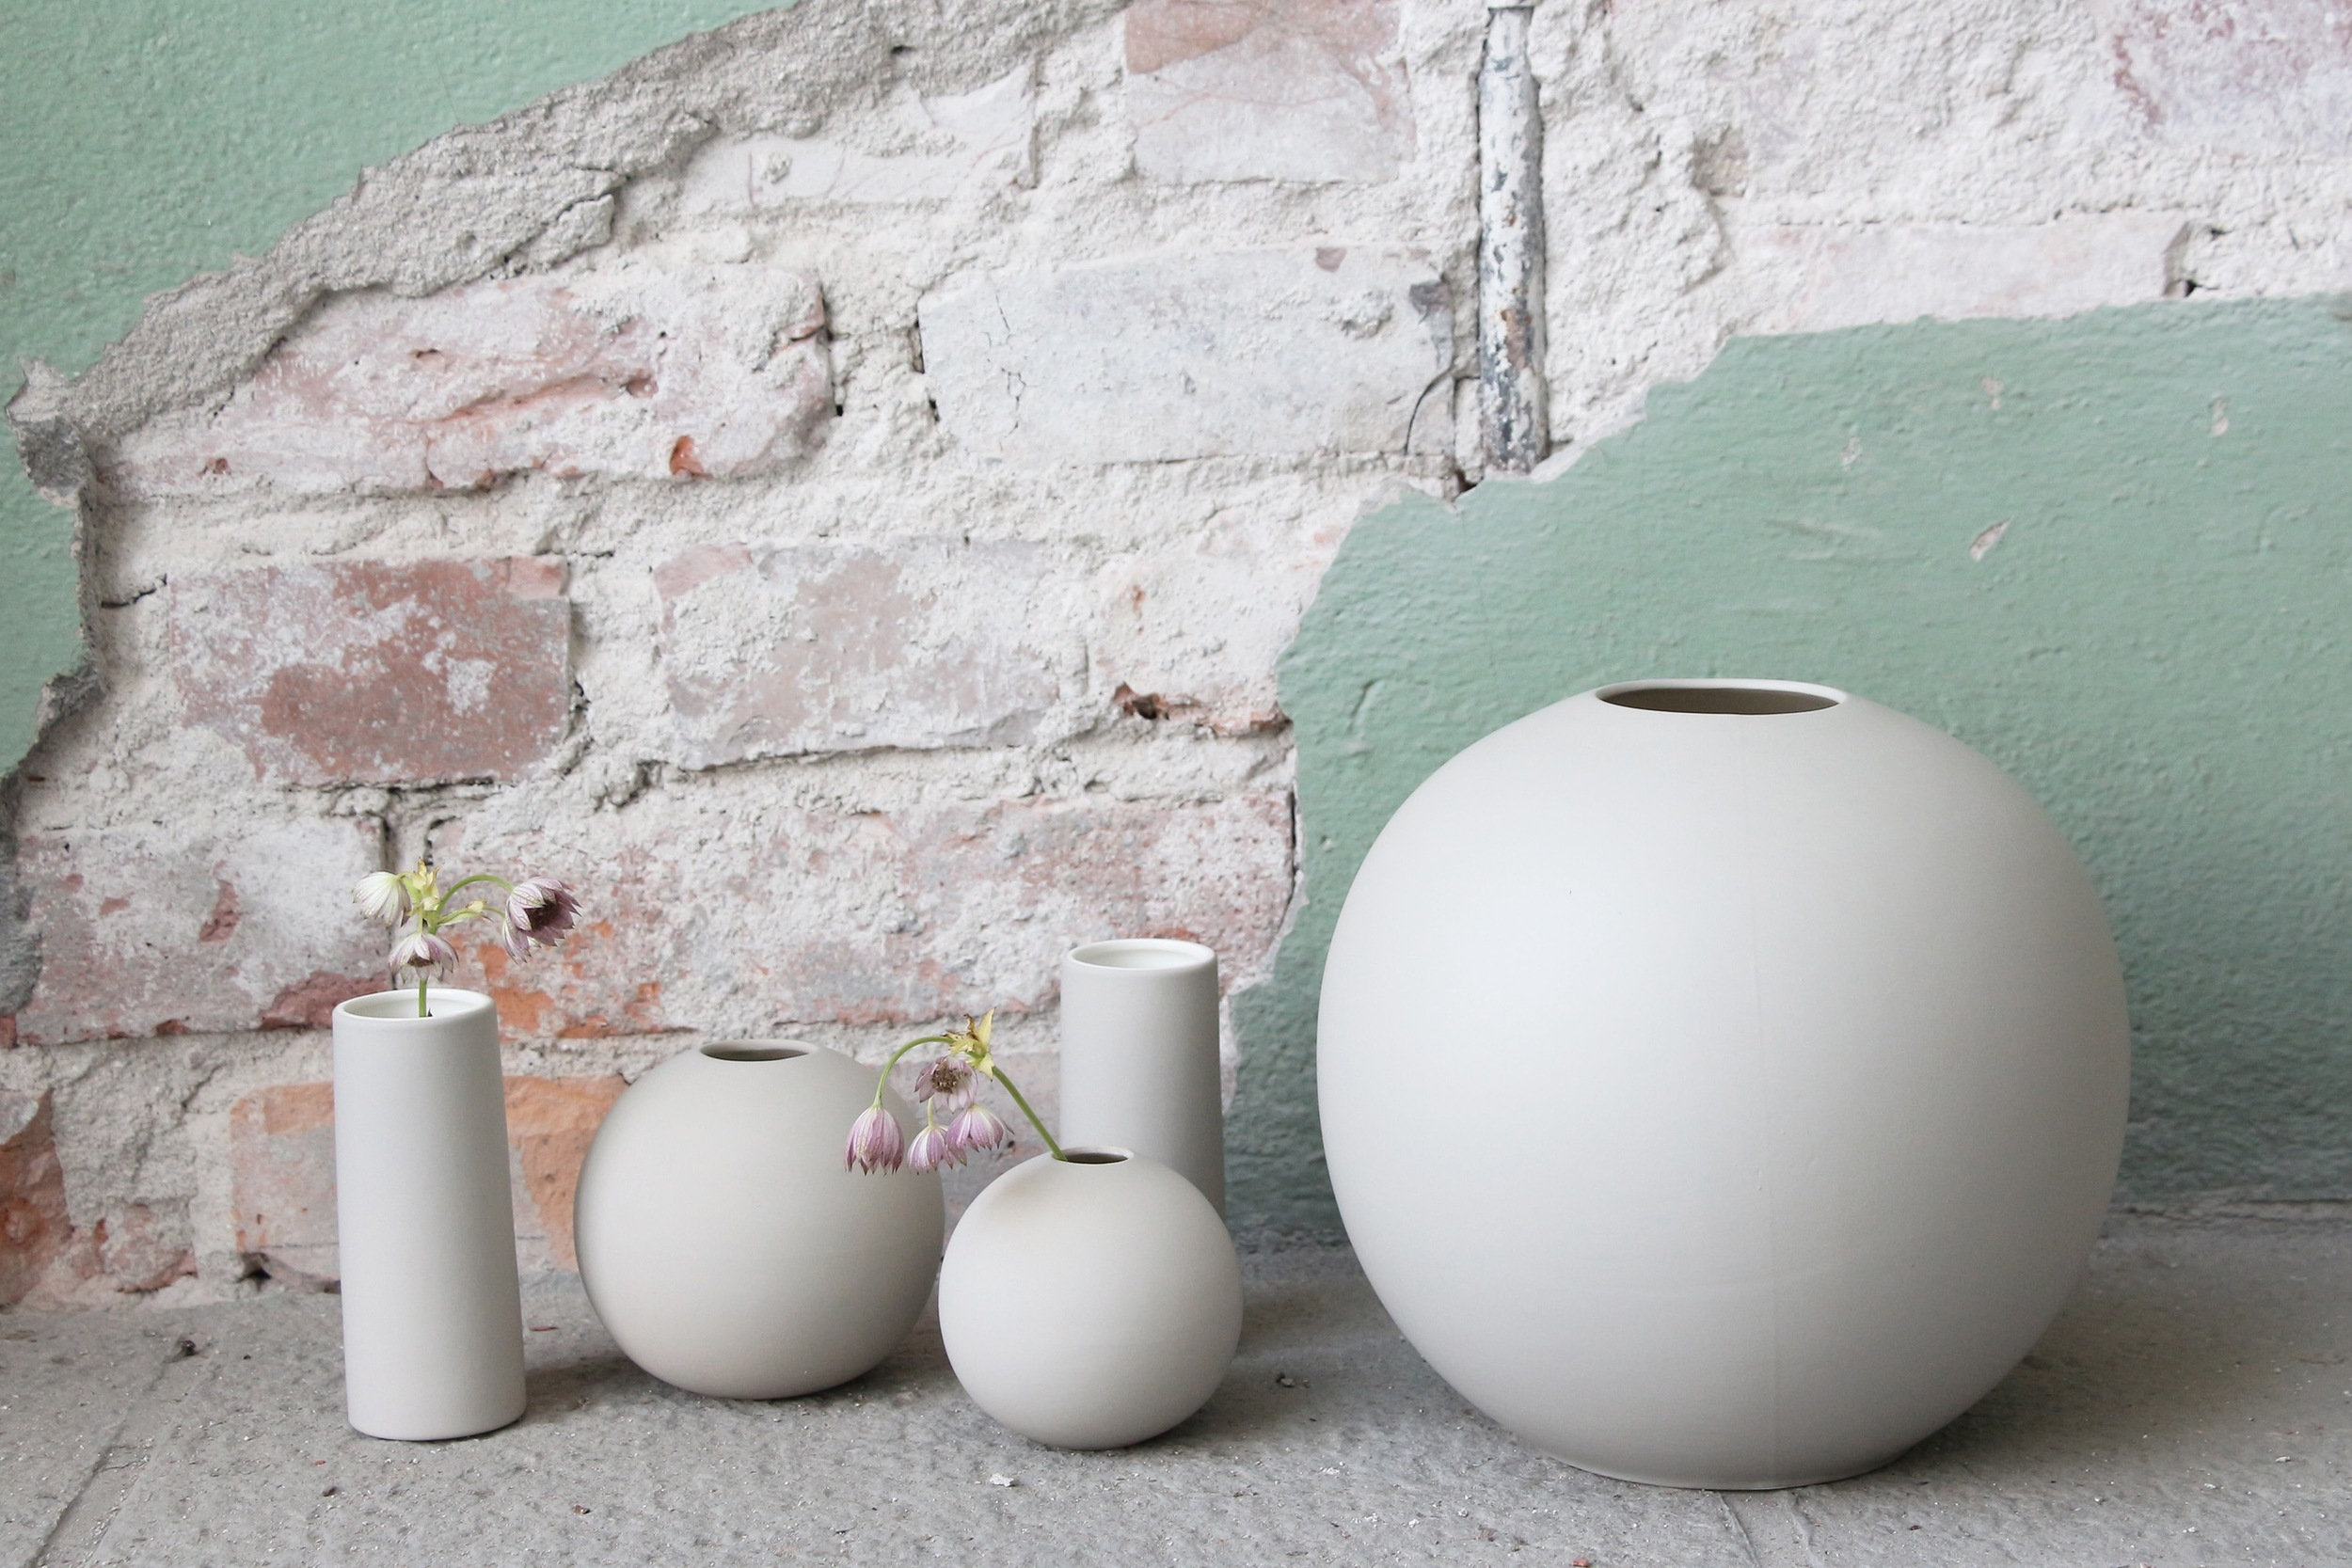 Ball vases and tube vases in sand.